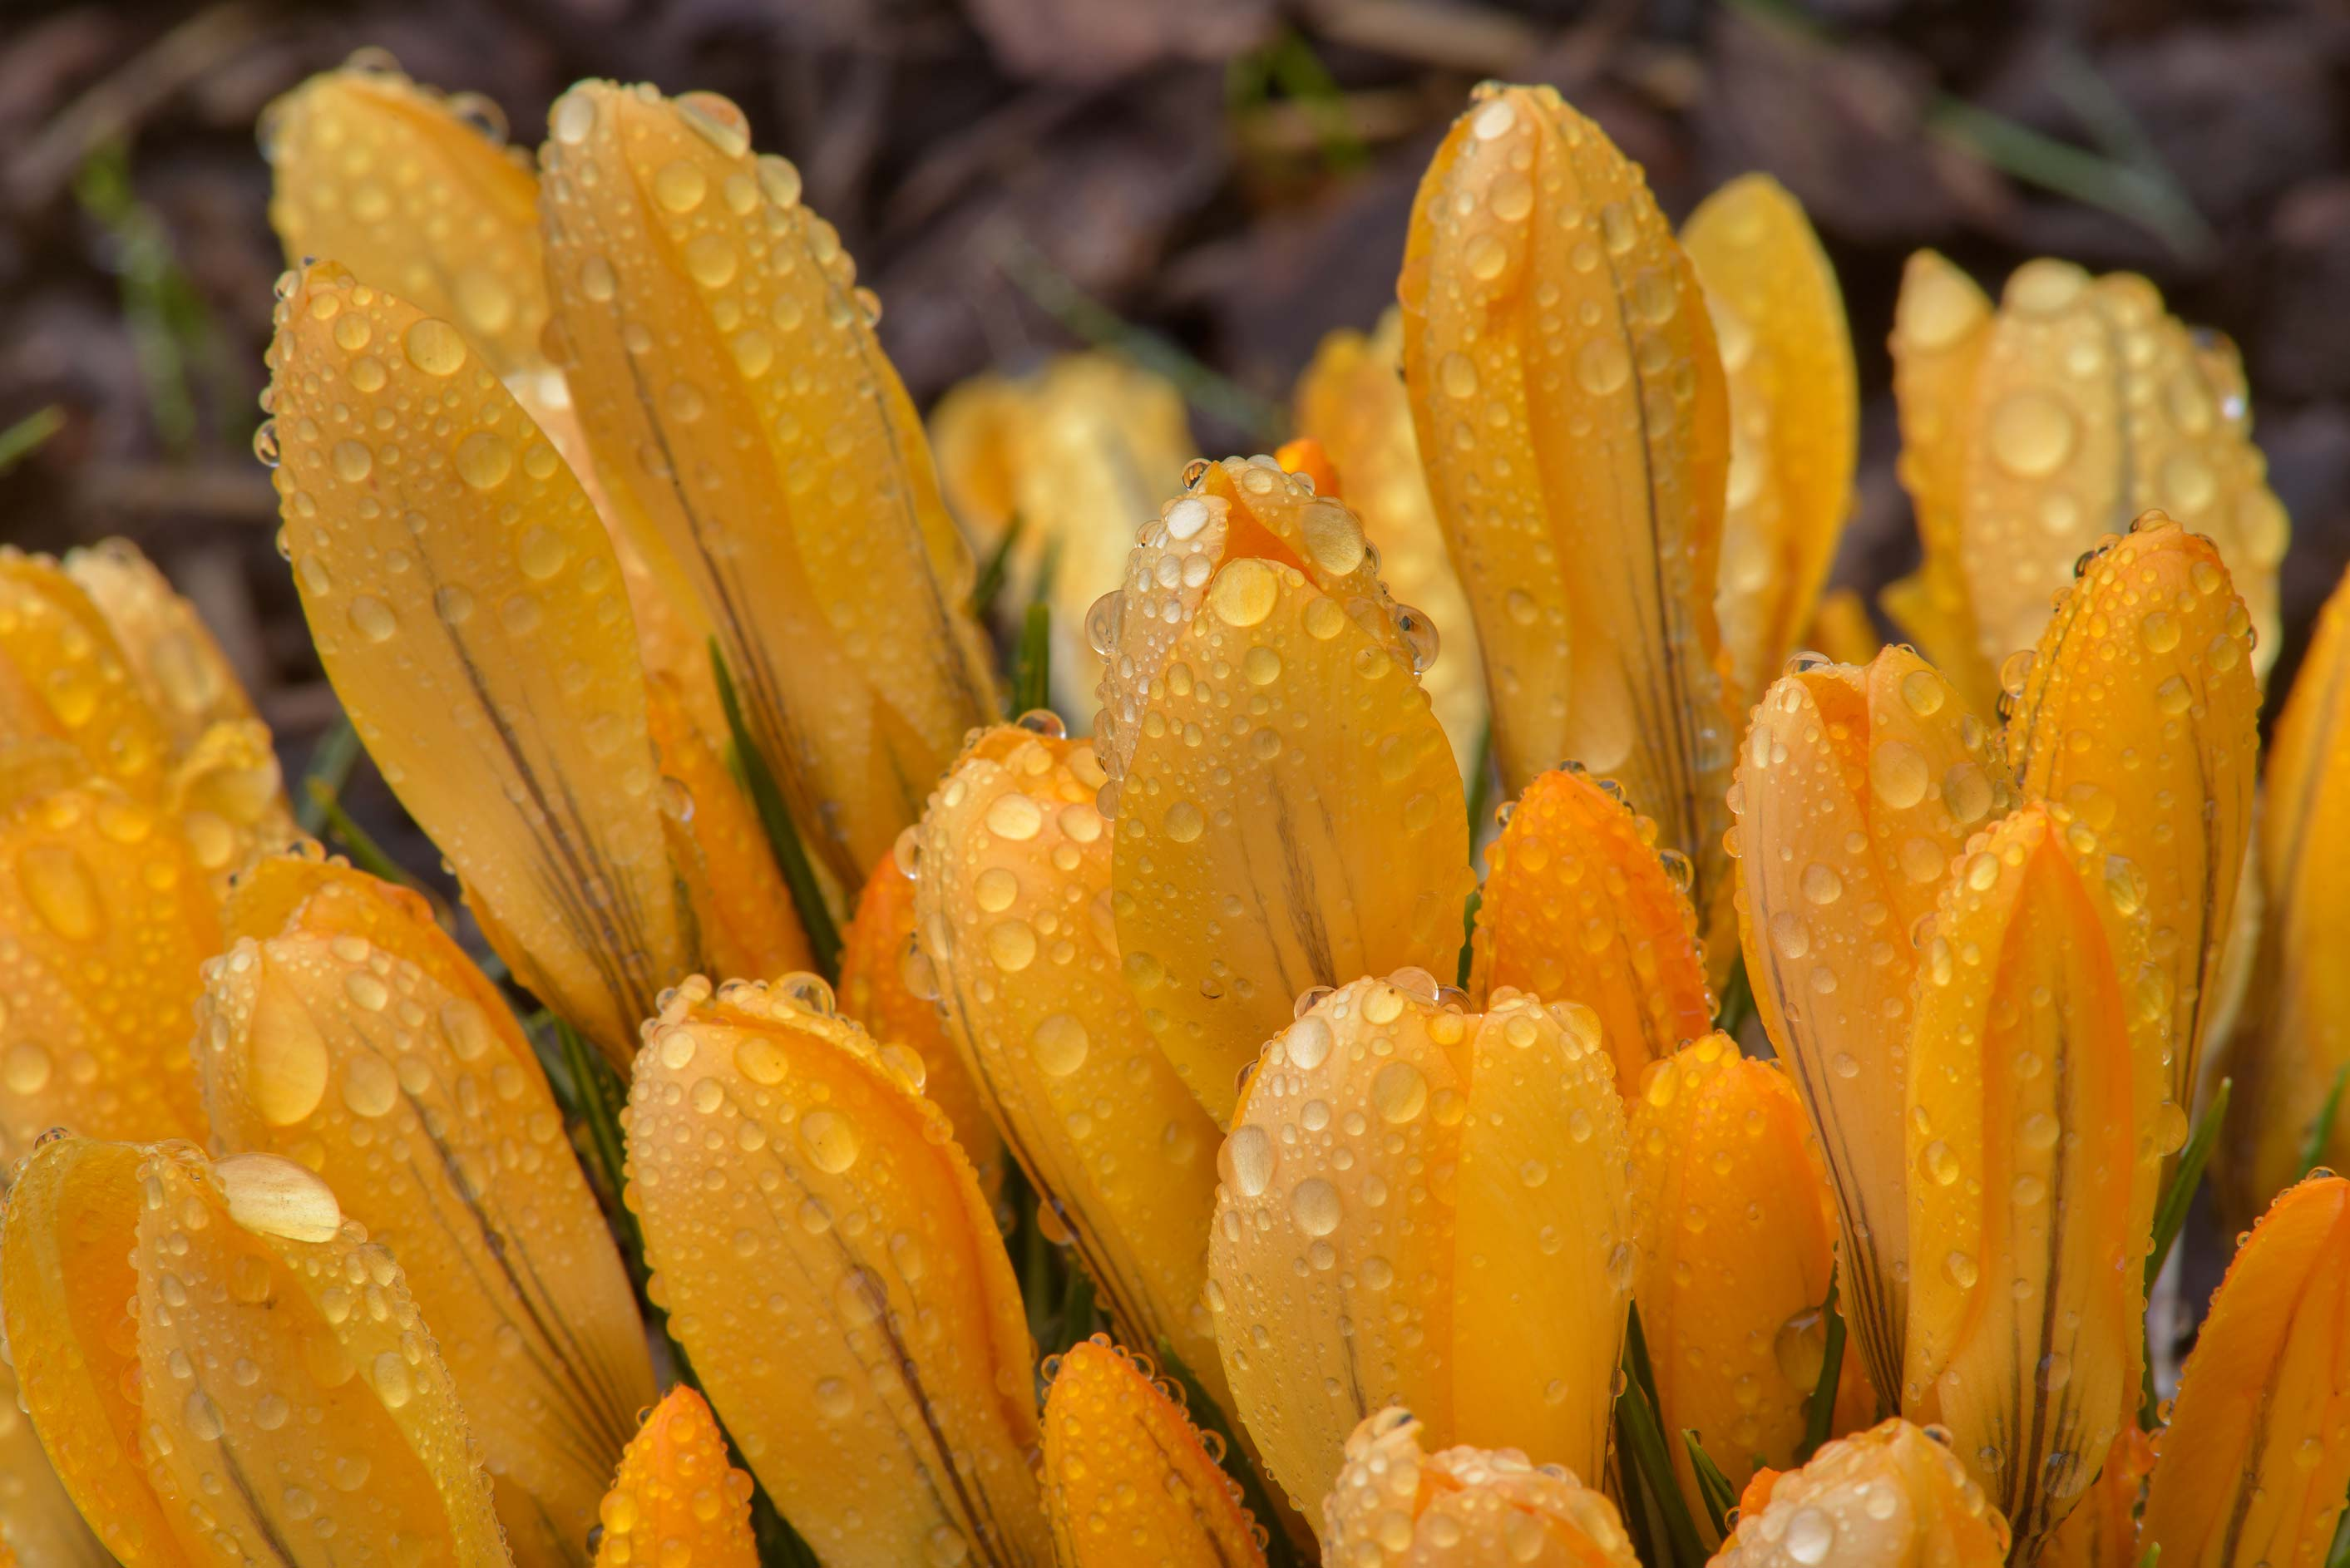 Flower buds of yellow crocus (Crocus flavus...Institute. St.Petersburg, Russia